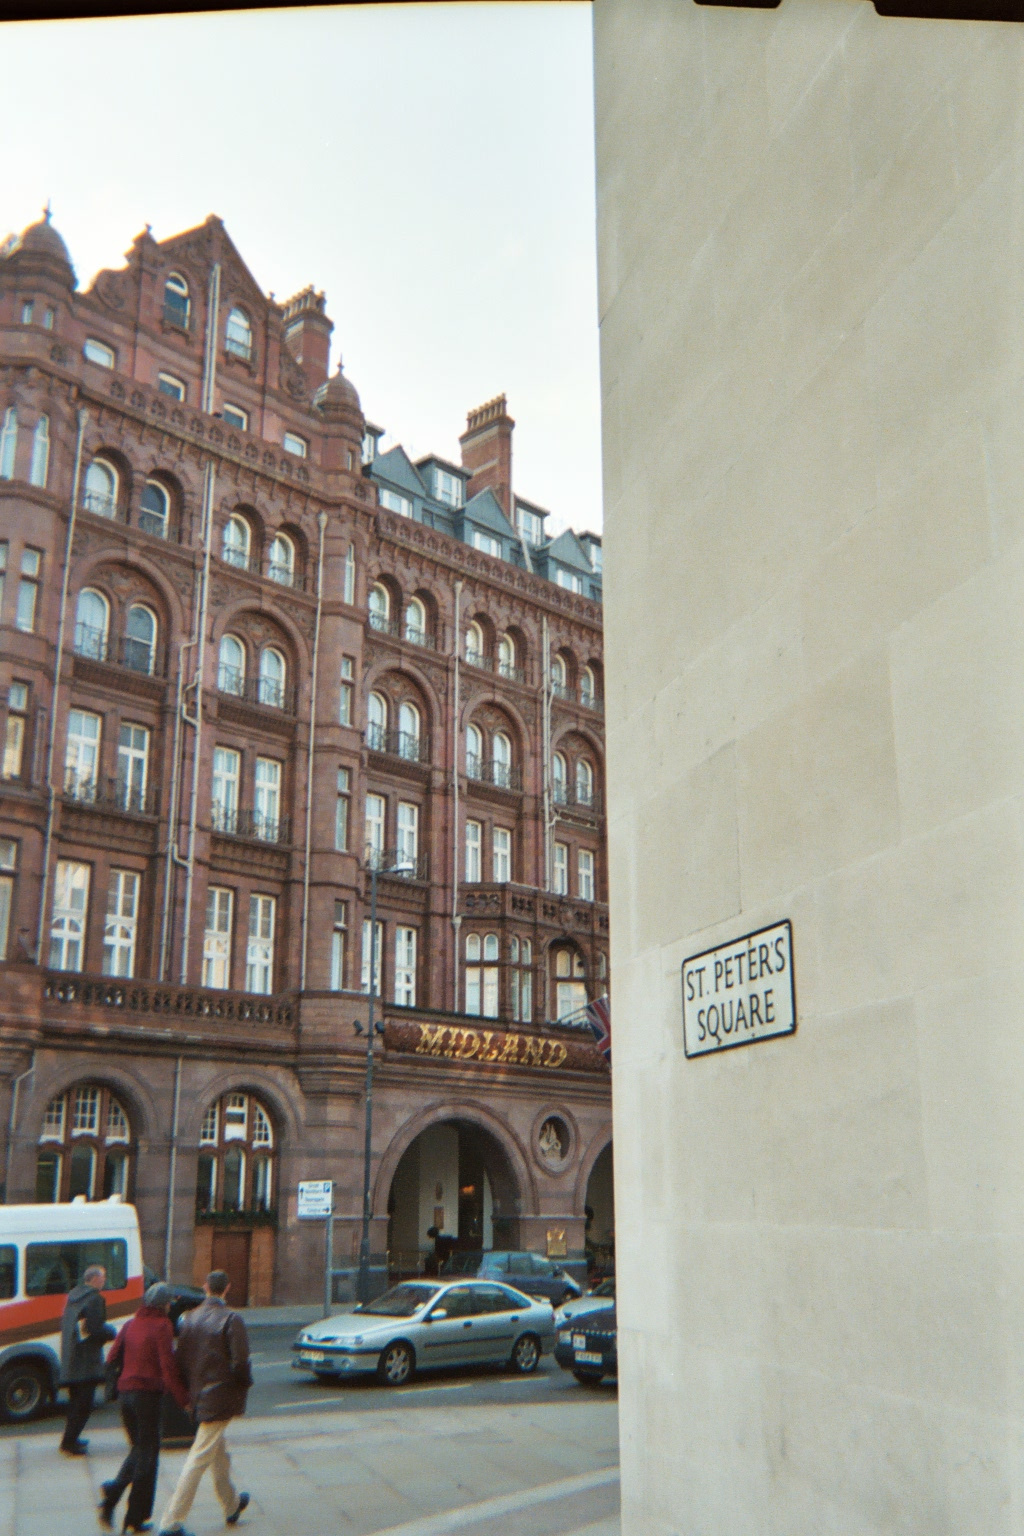 Midland Hotel and St Peters Square, Manchester